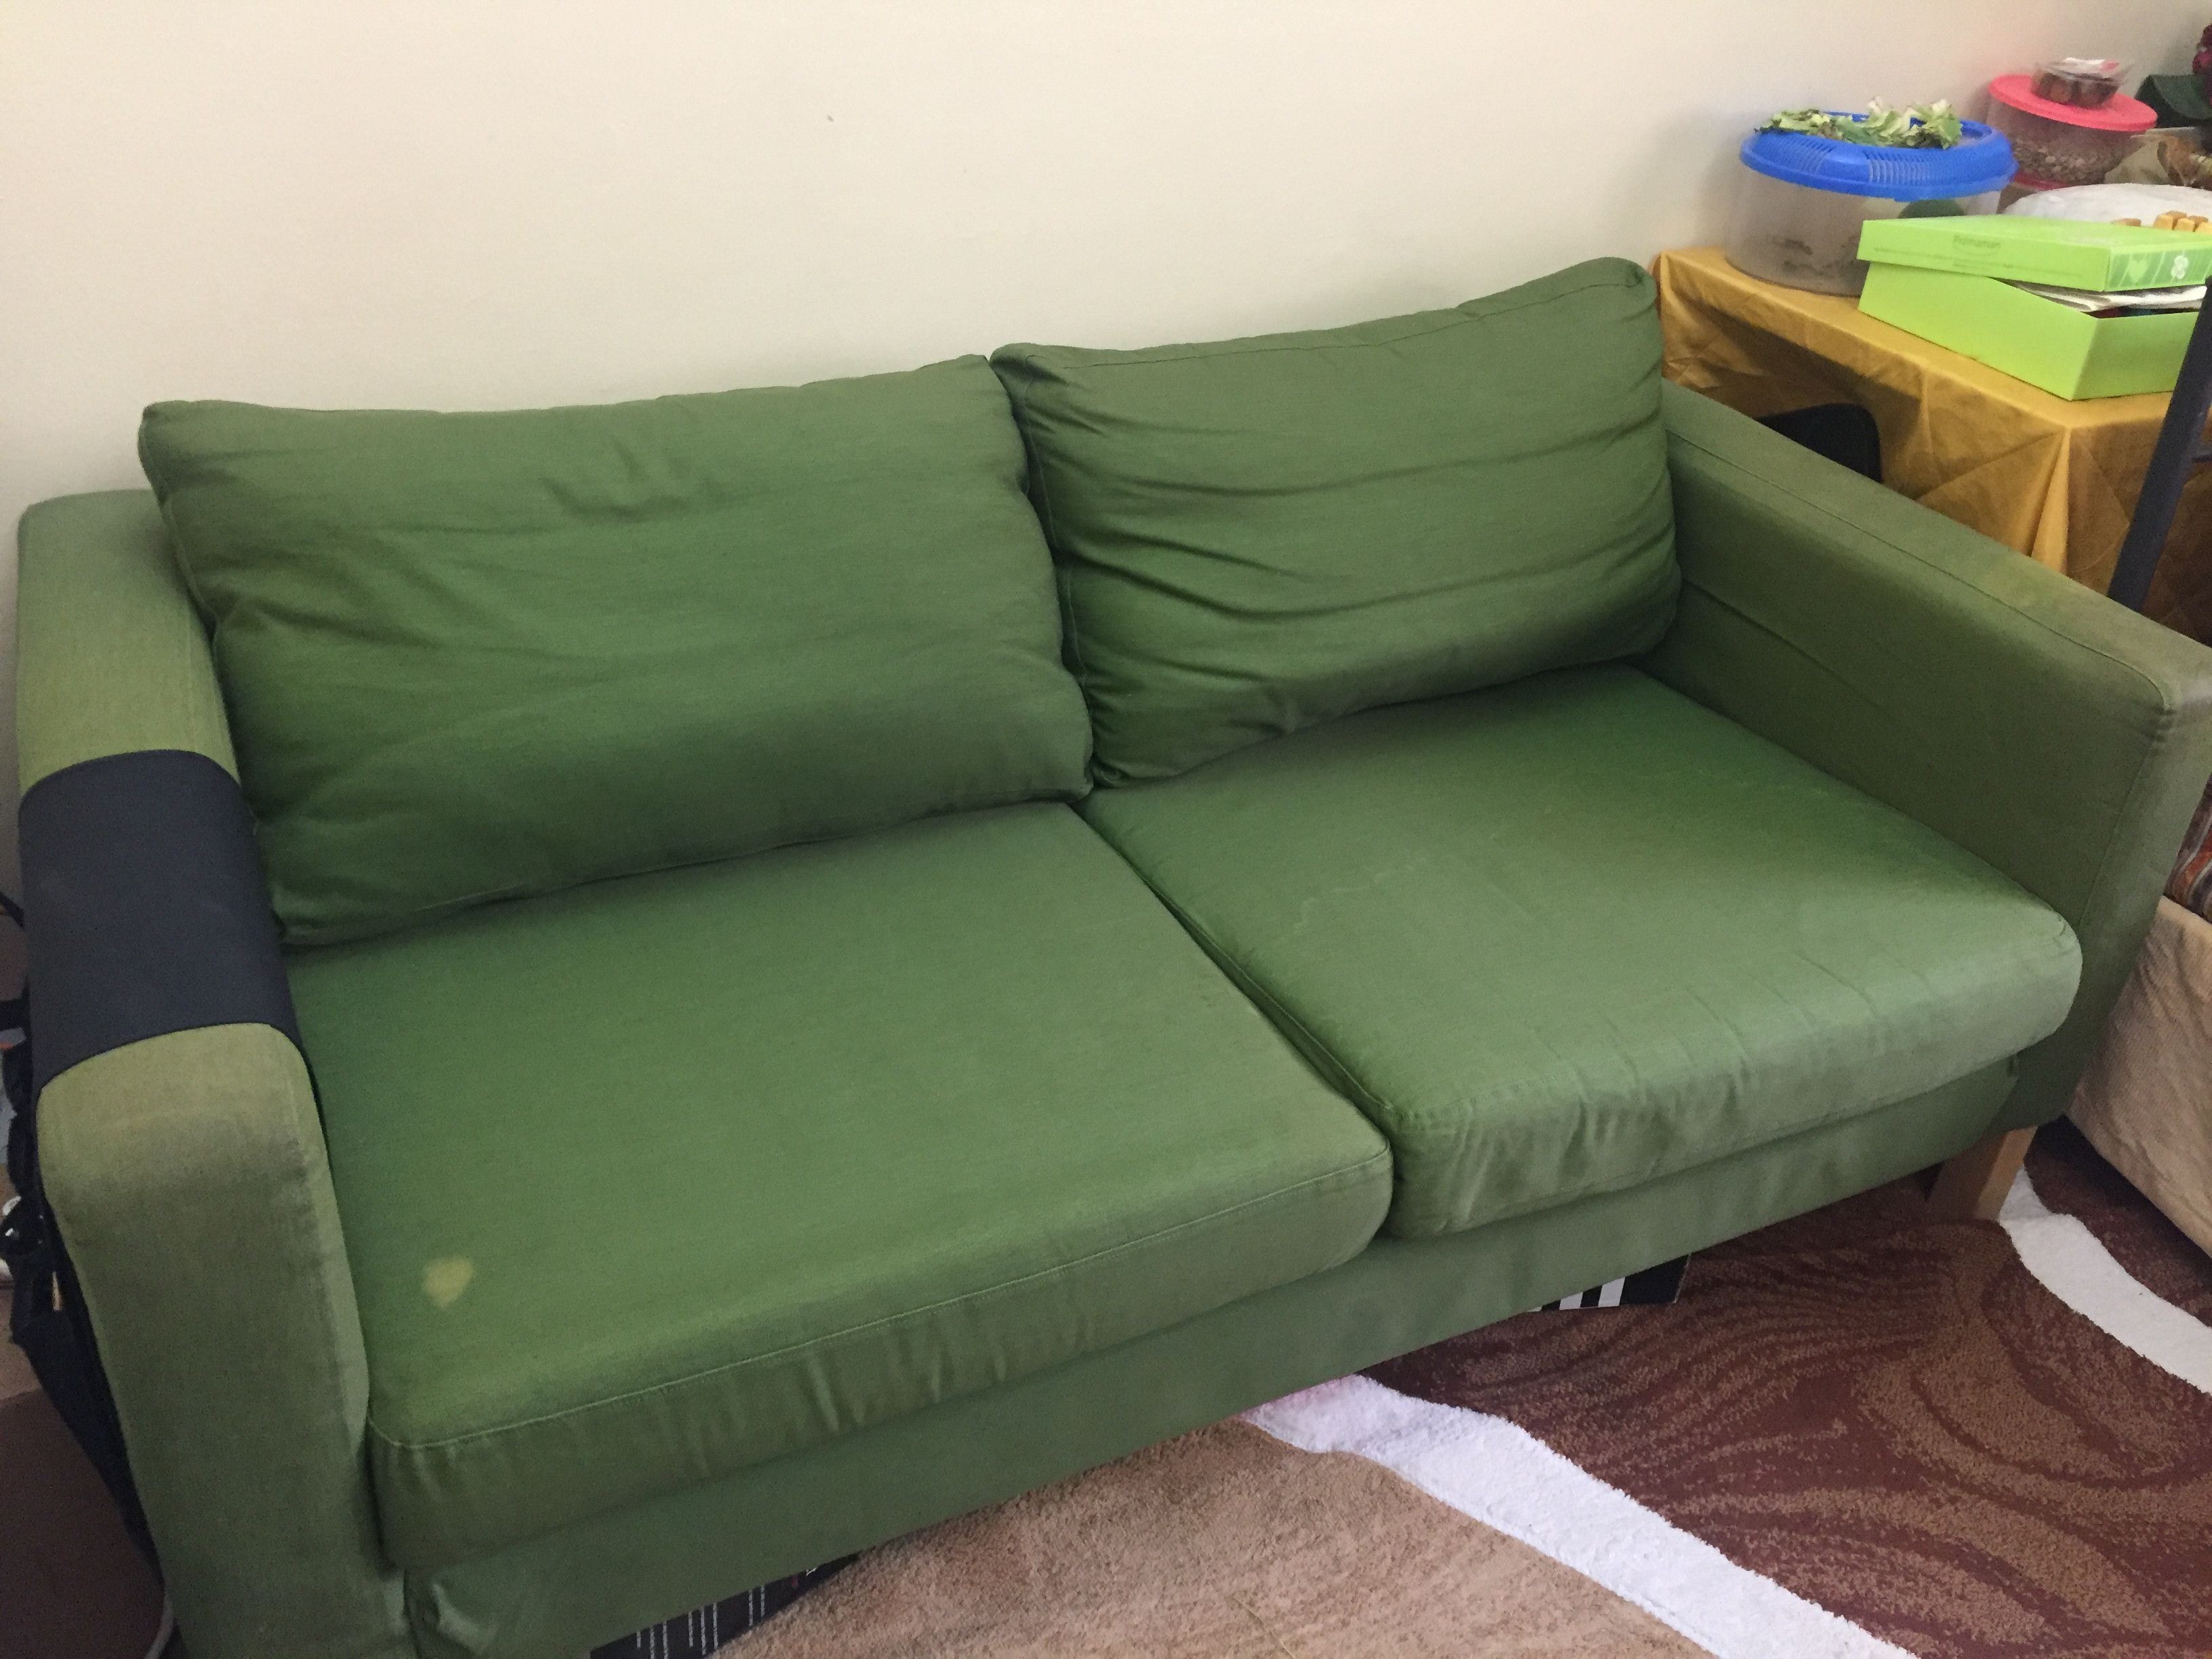 2 Seater sofa from IKEA in green colour Sharjah UAE